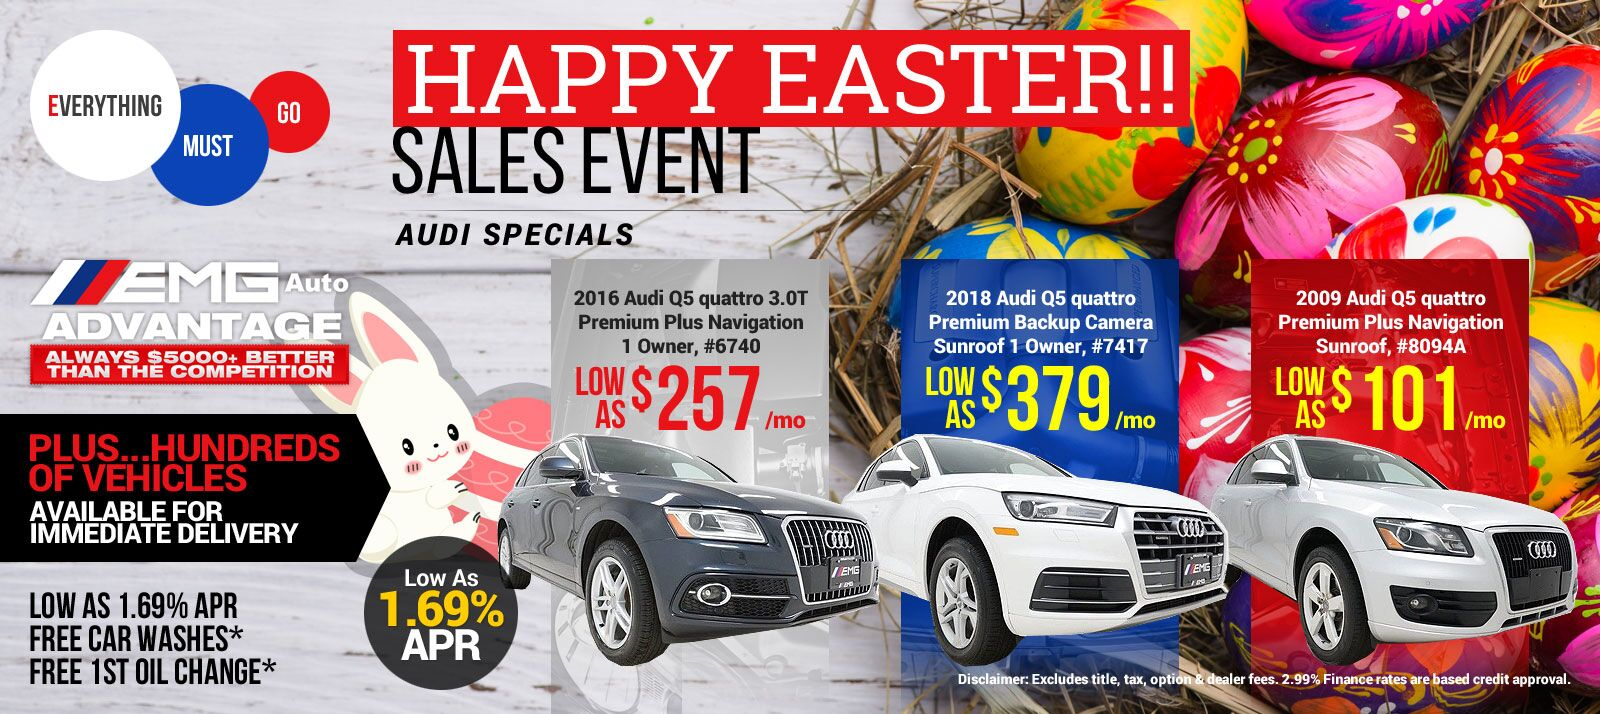 Dealership Avenel Nj Used Cars Emg Auto Sales